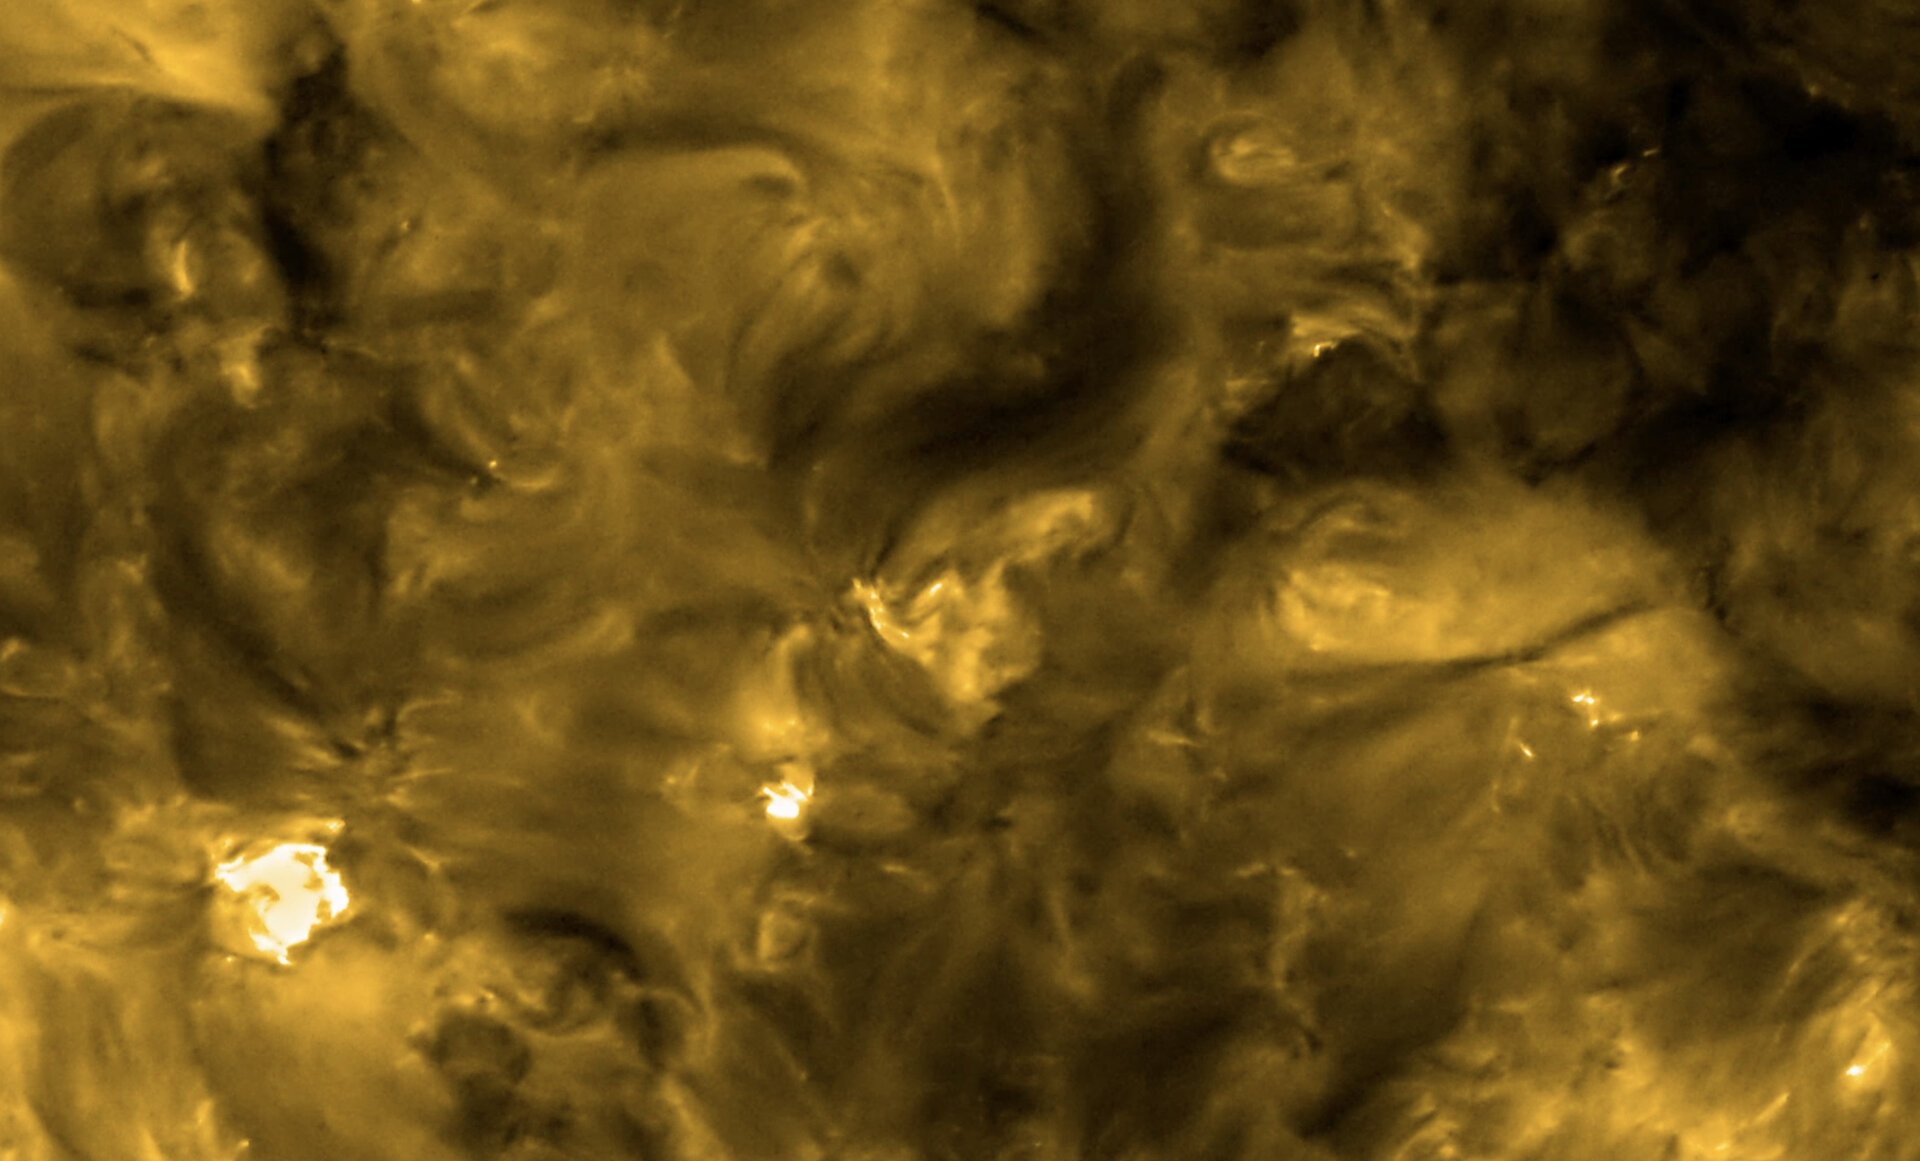 A high-resolution image from the Extreme Ultraviolet Imager (EUI) on ESA's Solar Orbiter spacecraft, taken with the HRIEUV telescope on 30 May 2020. These images show the Sun's appearance at a wavelength of 17 nanometers, which is in the extreme ultraviolet region of the electromagnetic spectrum. Images at this wavelength reveal the upper atmosphere of the Sun, the corona, with a temperature of around 1 million degrees. (Solar Orbiter/EUI Team (ESA & NASA); CSL, IAS, MPS, PMOD/WRC, ROB, UCL/MSSL)